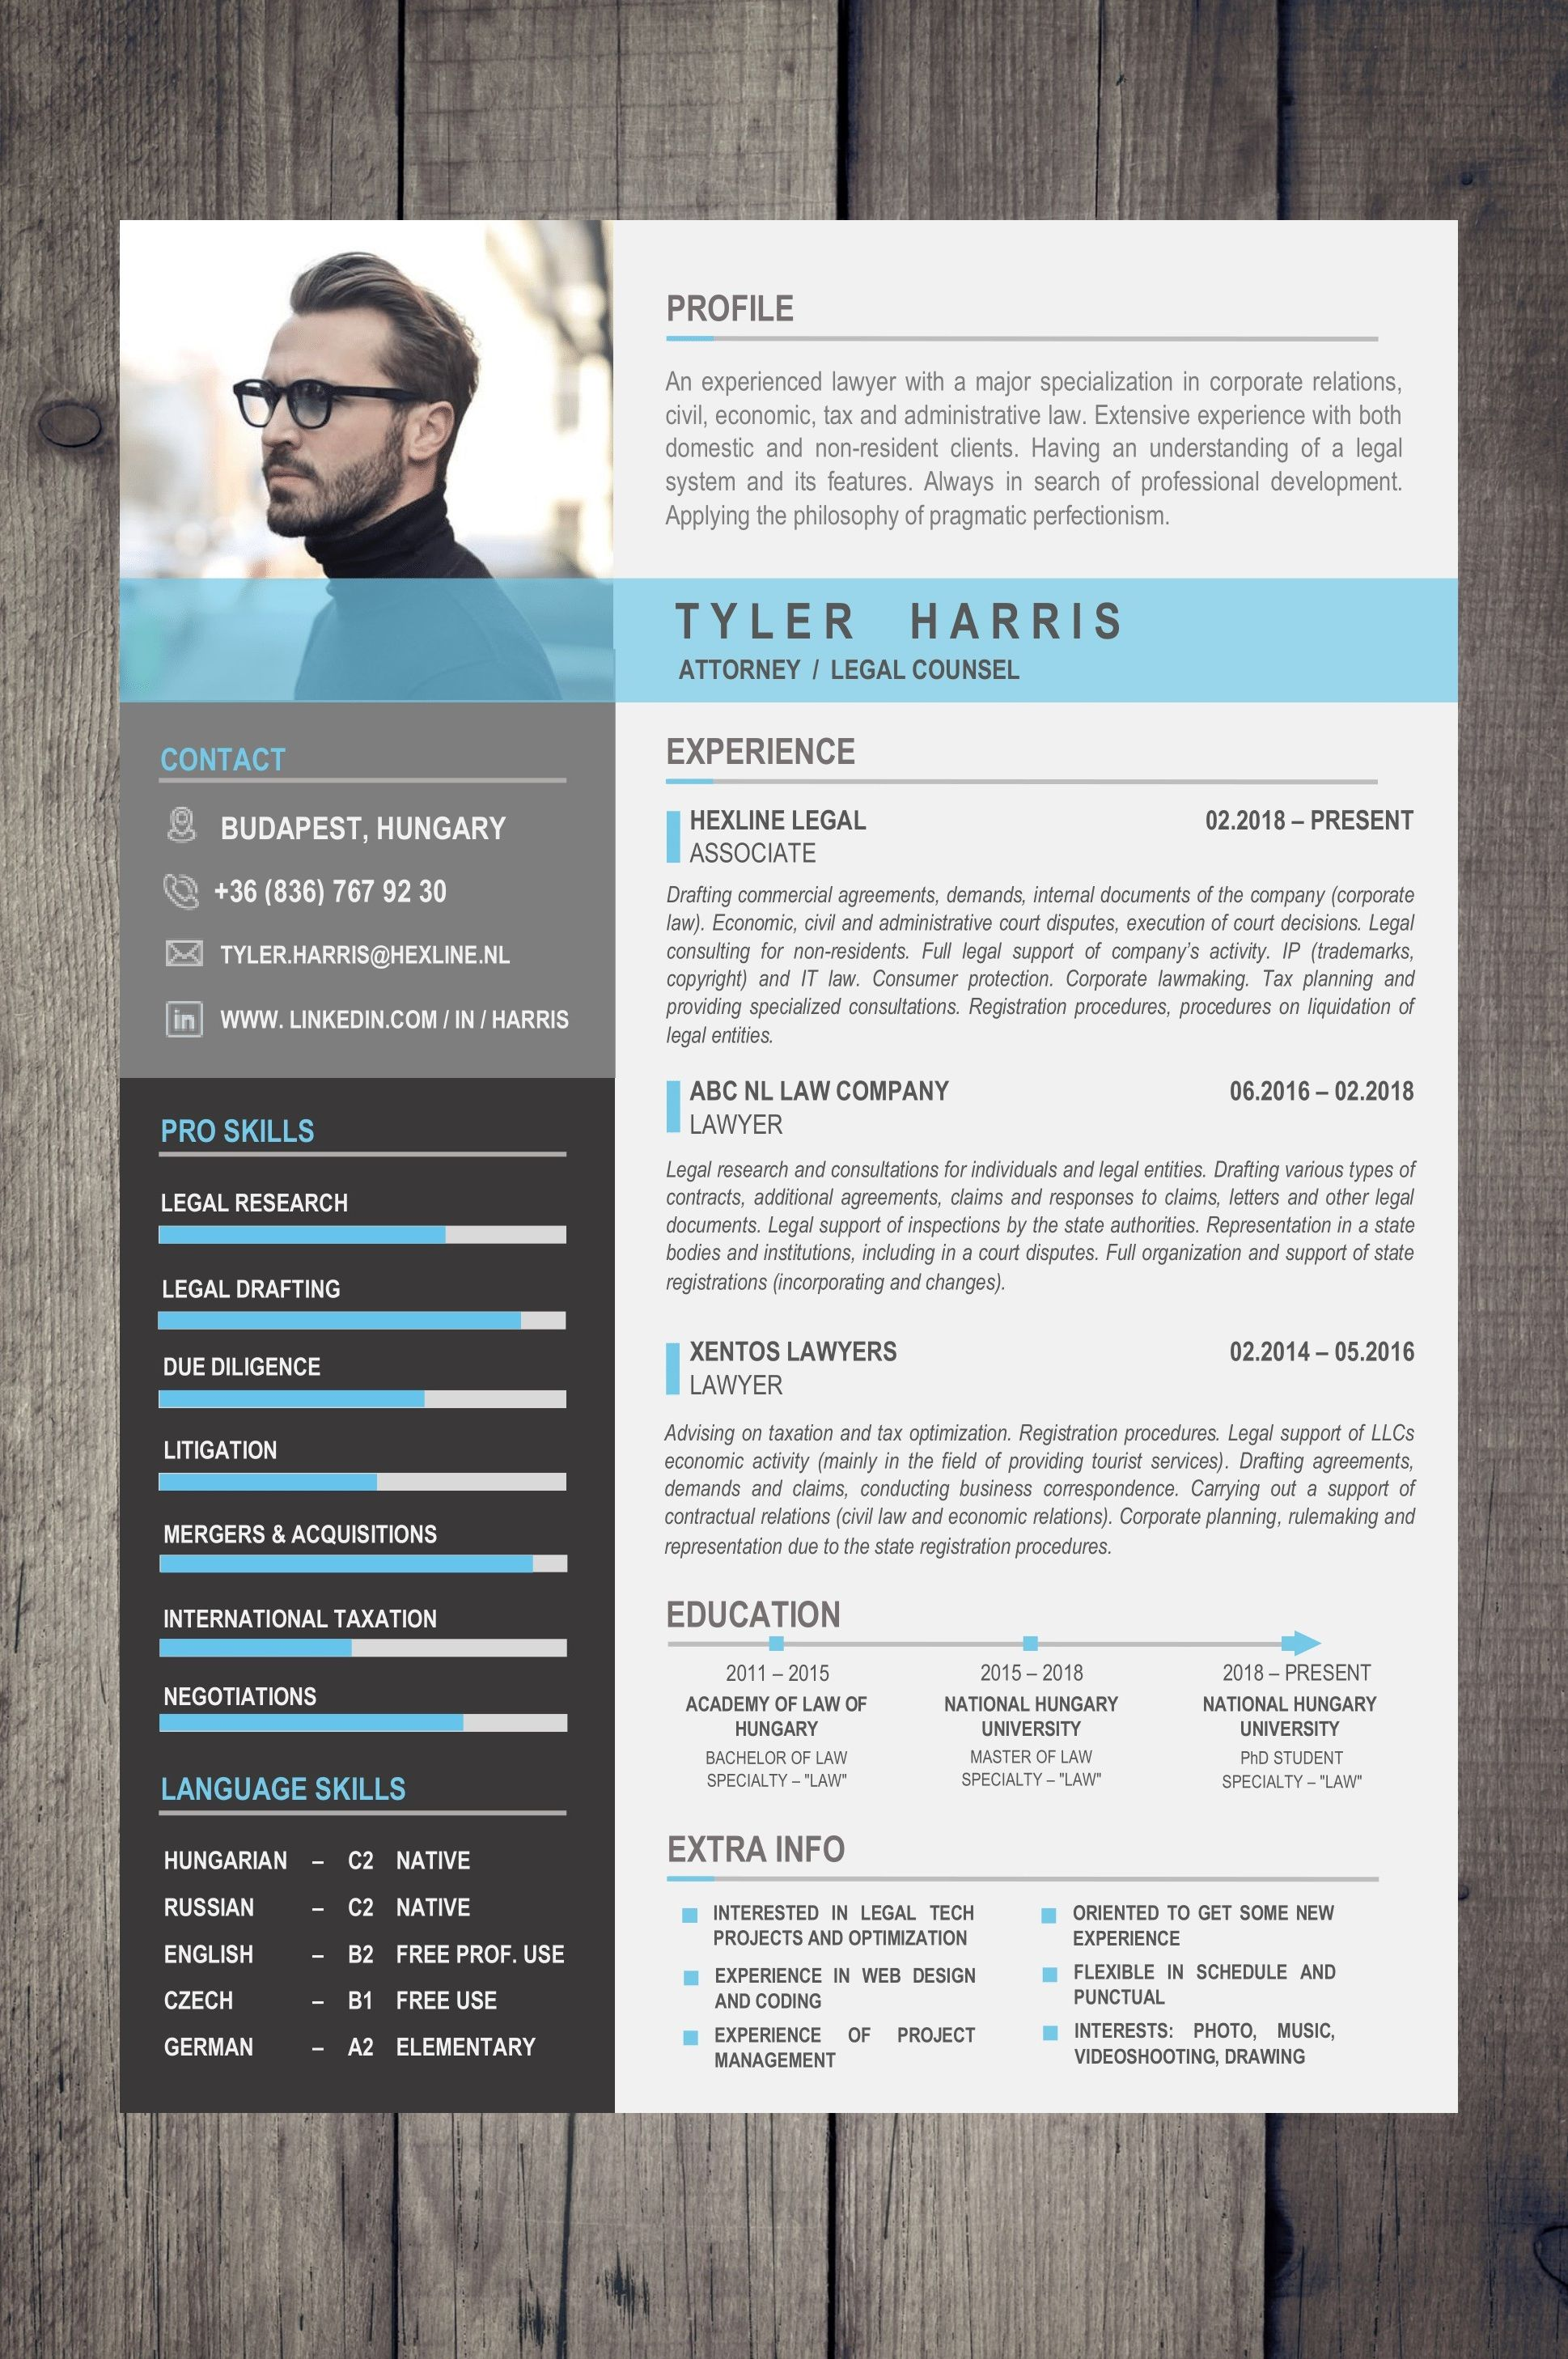 Beautiful Free Resume / CV in one page with matching cover